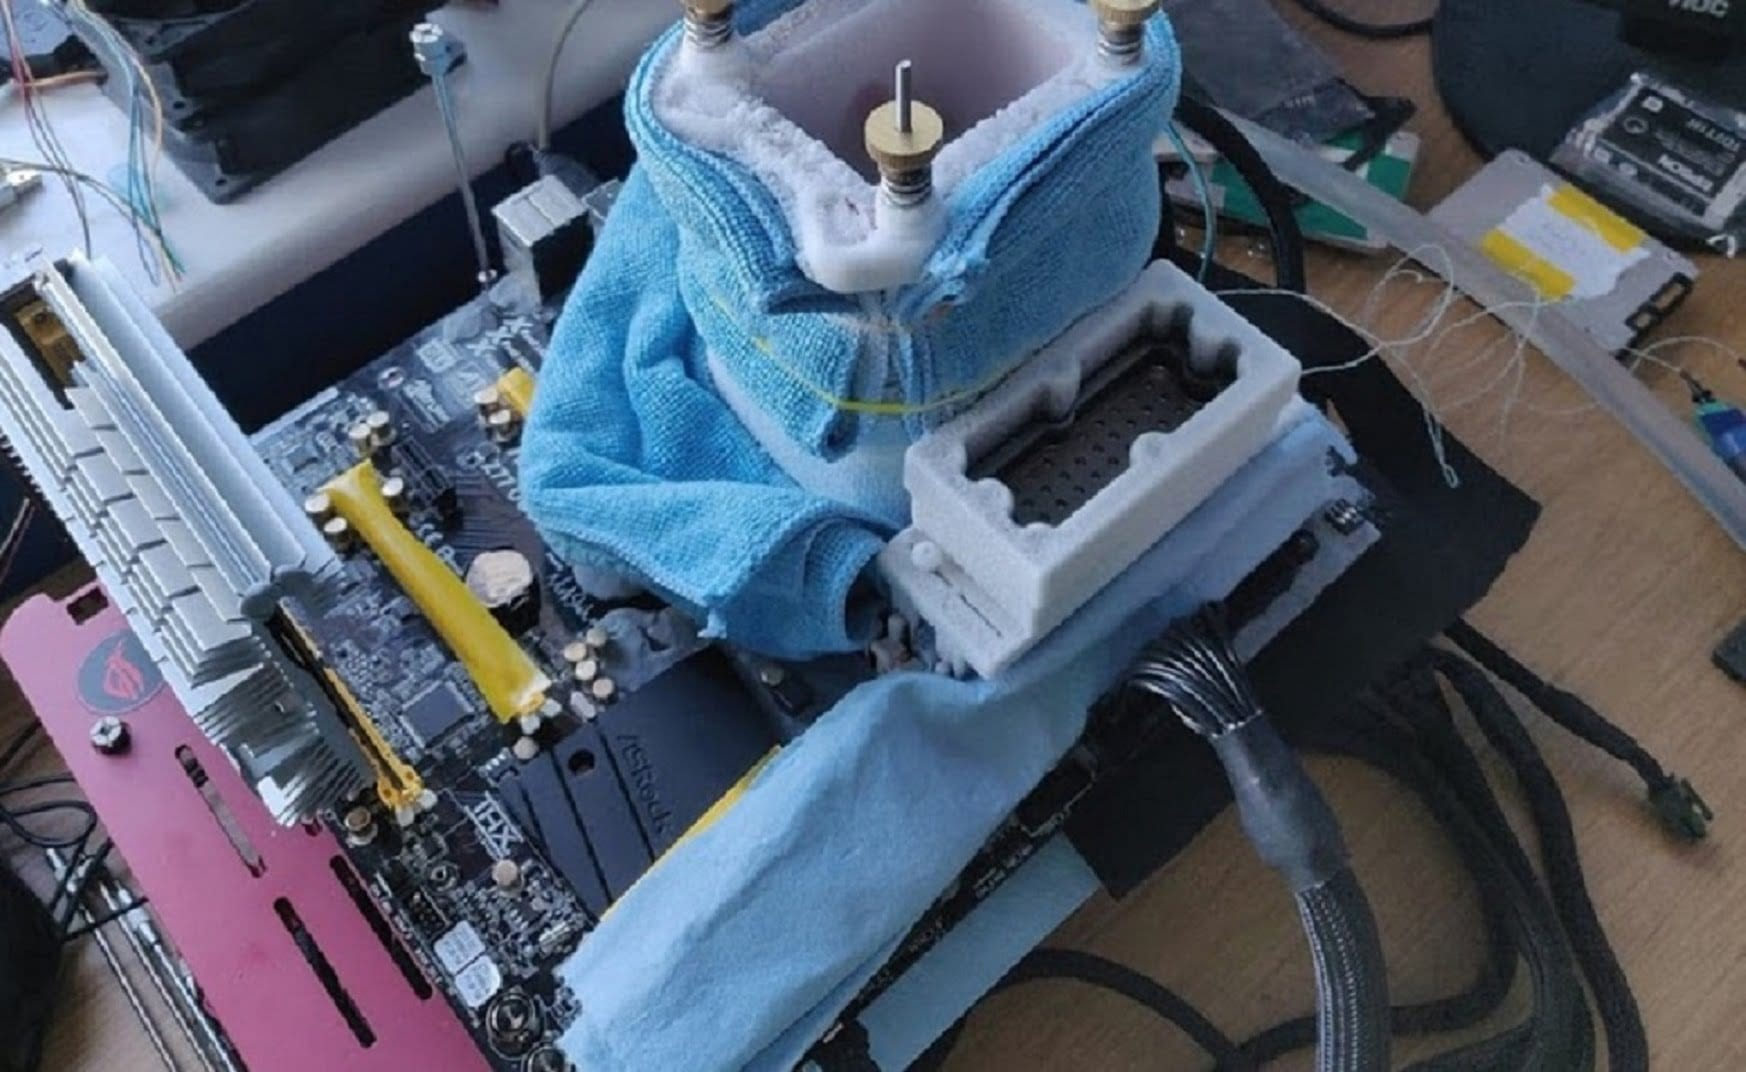 First benchmarks of 12-thread Intel Core i5-10400 processor and comparison with Core i5-9400F and Core i7-9700F